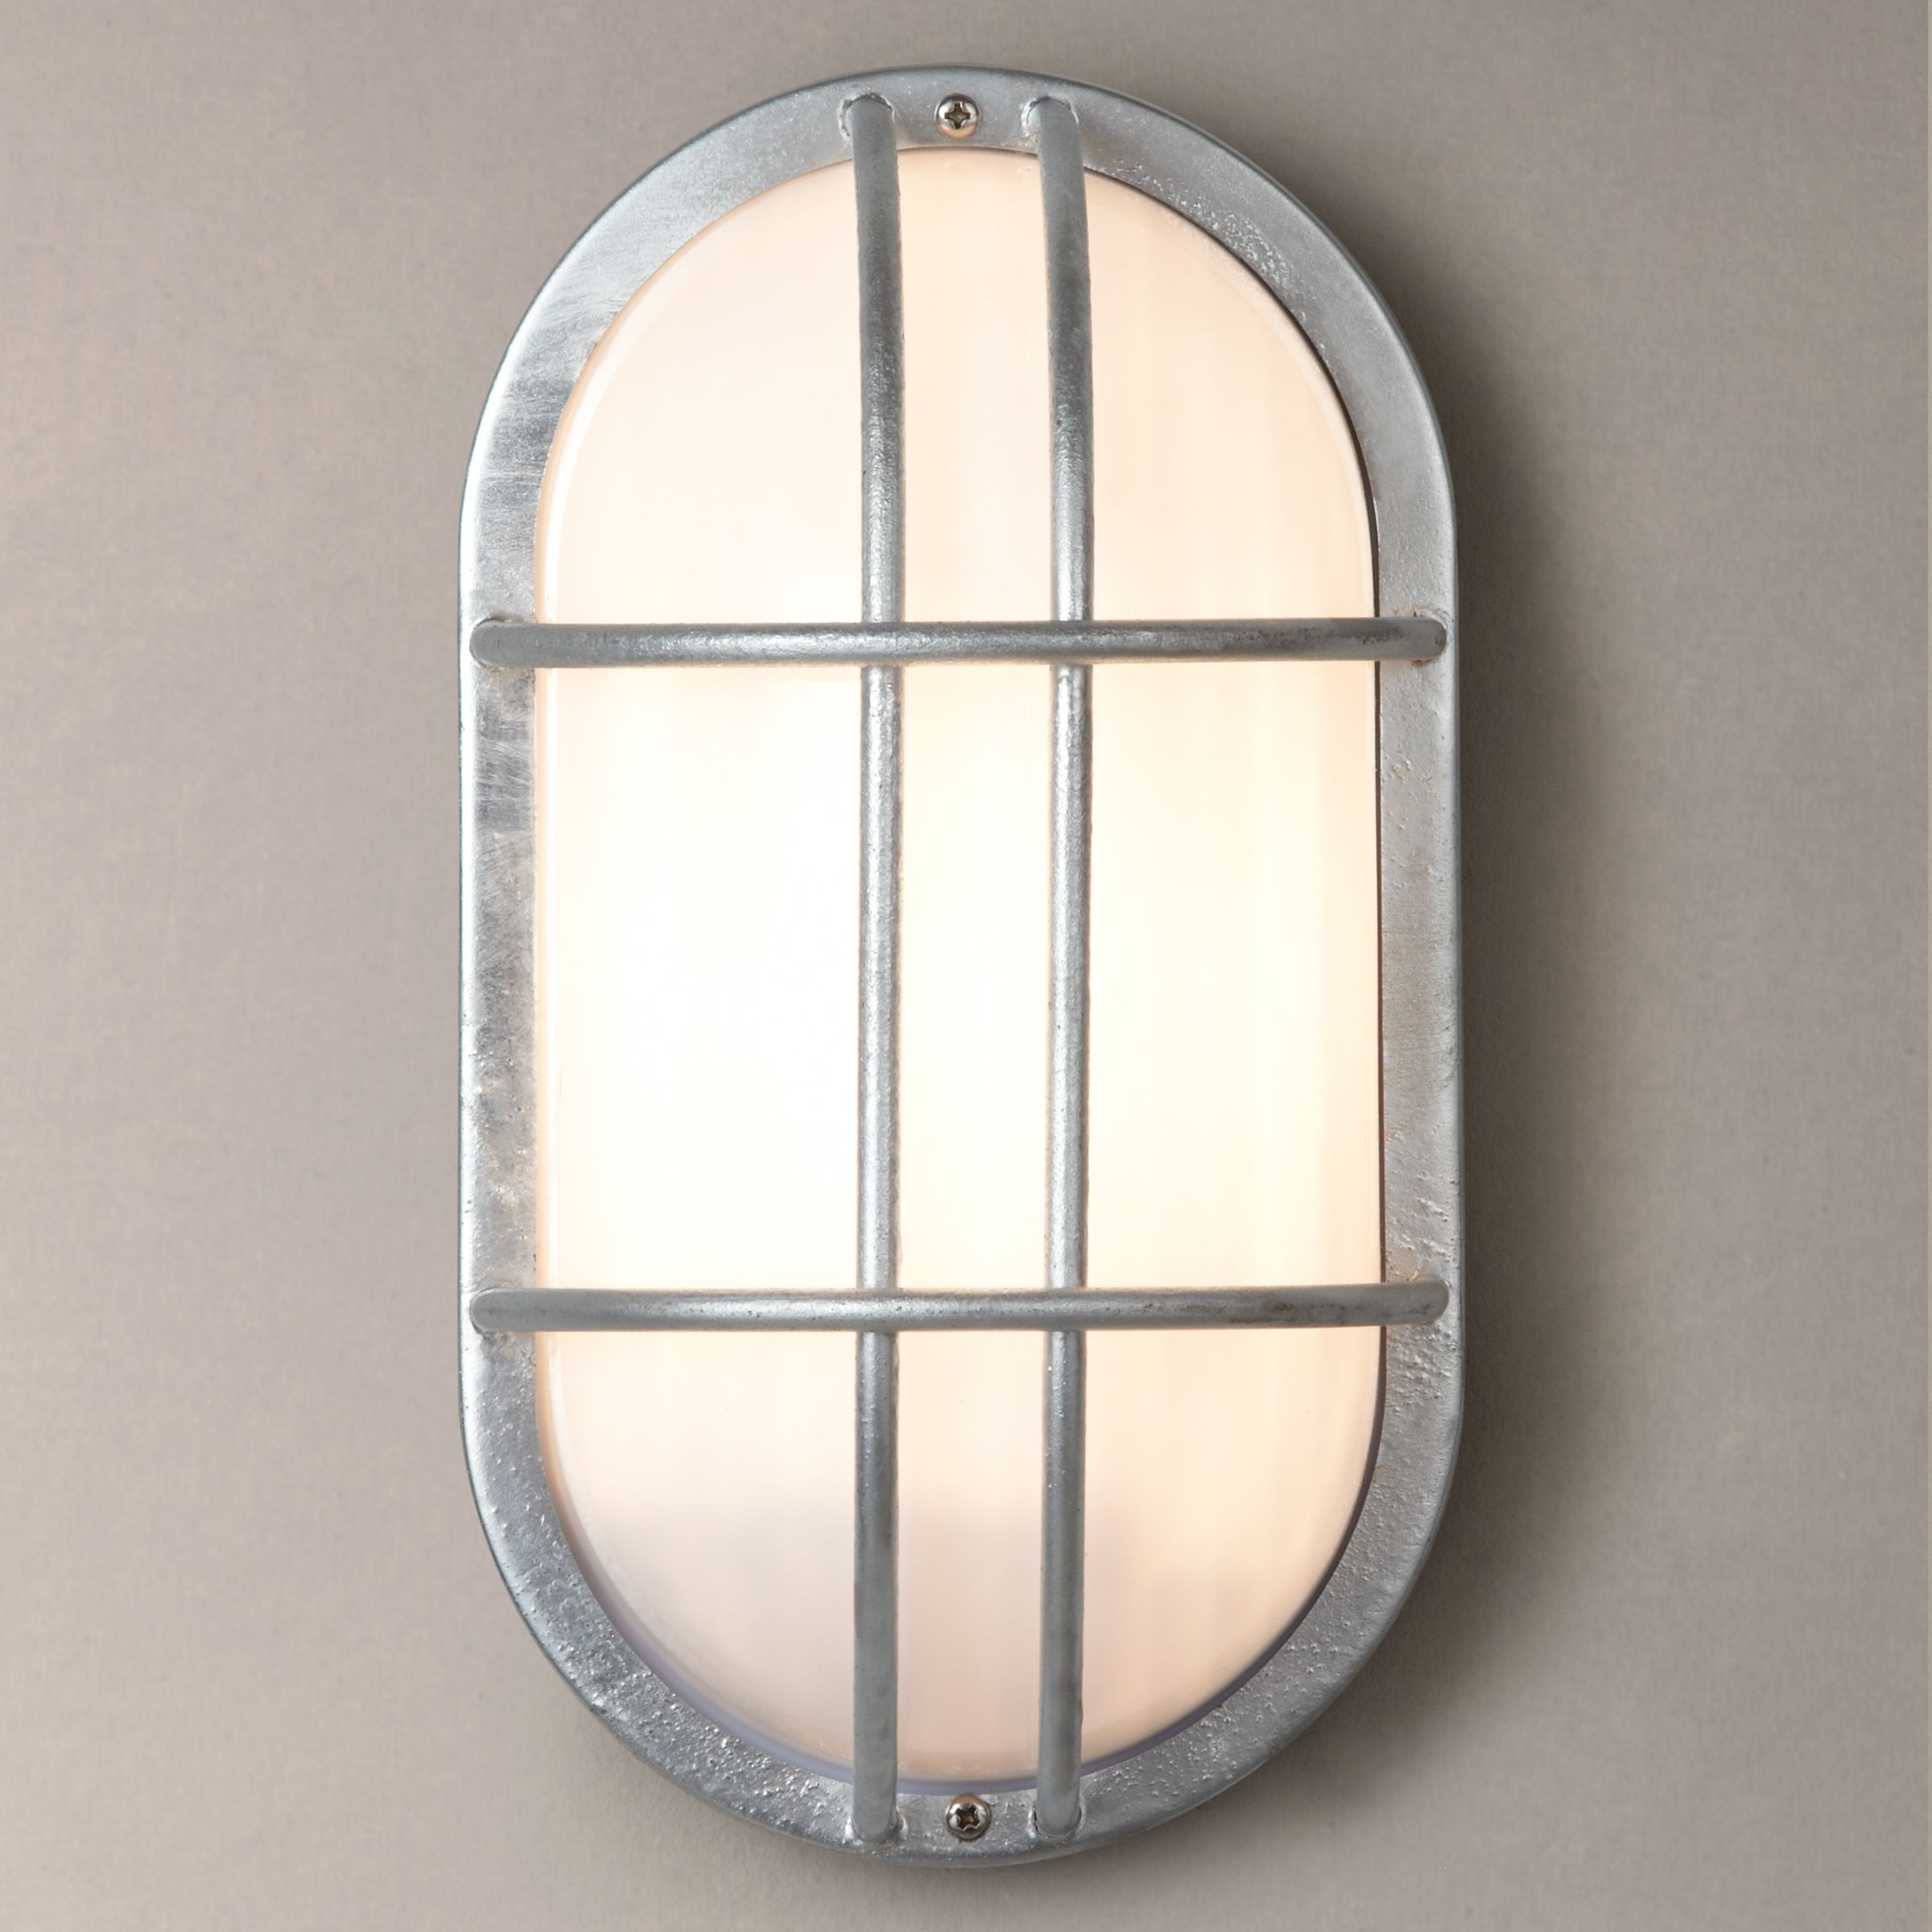 Garden Trading Outdoor Wall Lights : Buy Garden Trading St Ives Bulkhead Galvanised Outdoor Light John Lewis